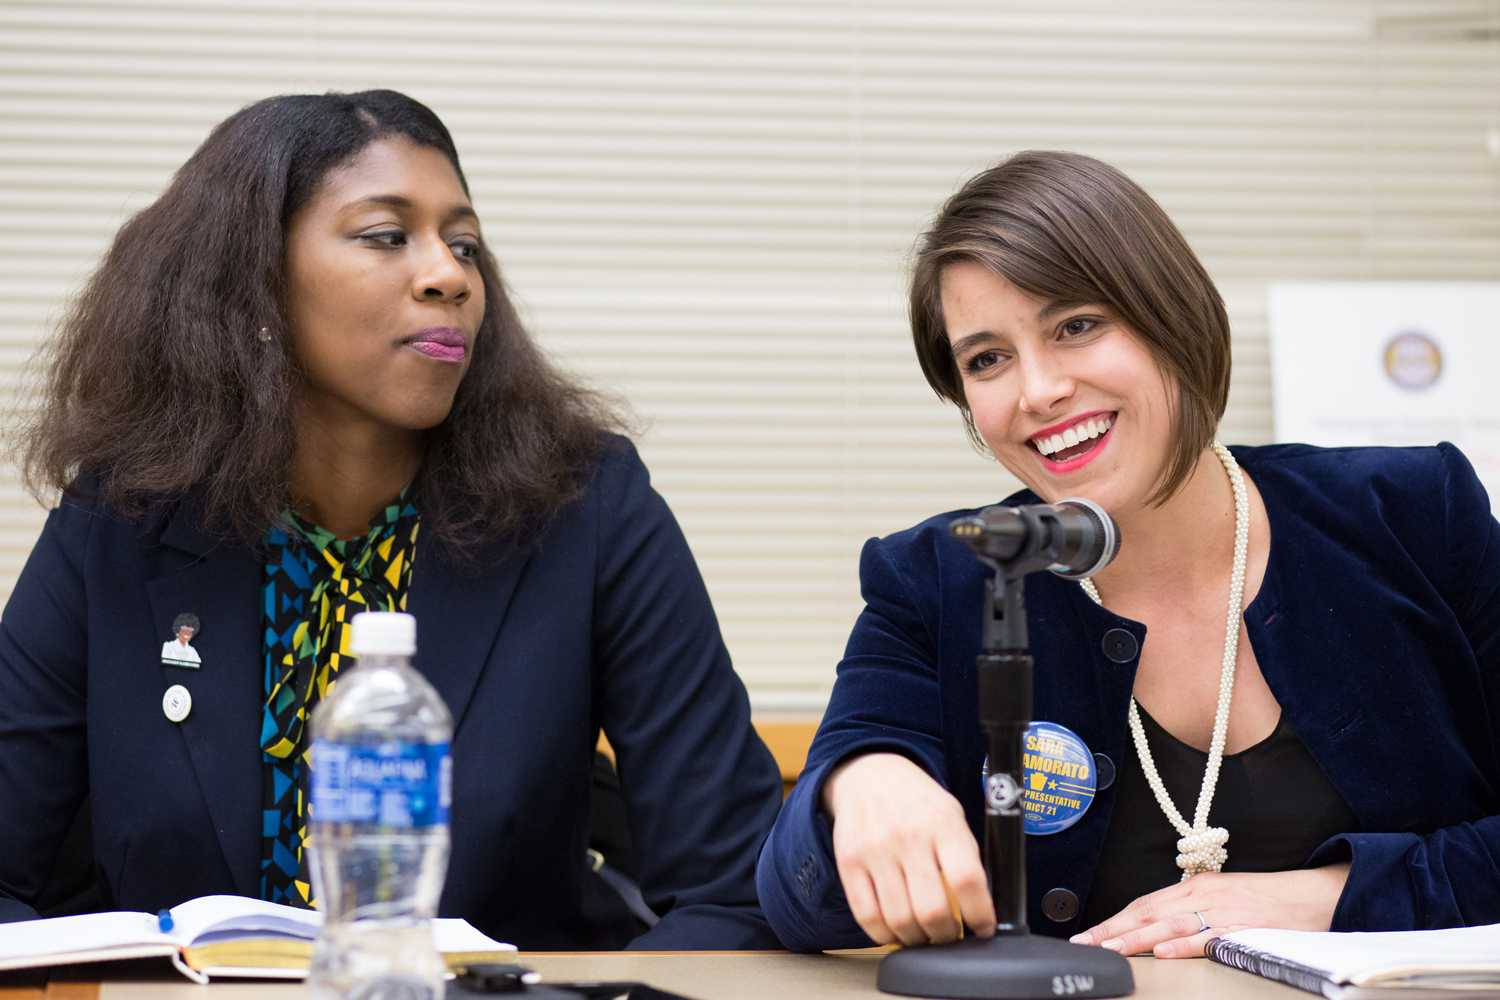 Mayor of Wilkinsburg Marita Garrett (left) listens as District 21 State Representative candidate Sara Innamorato discusses her entry into the political field at Sunday evening's Women in Politics panel. (Photo by Thomas Yang | Visual Editor)